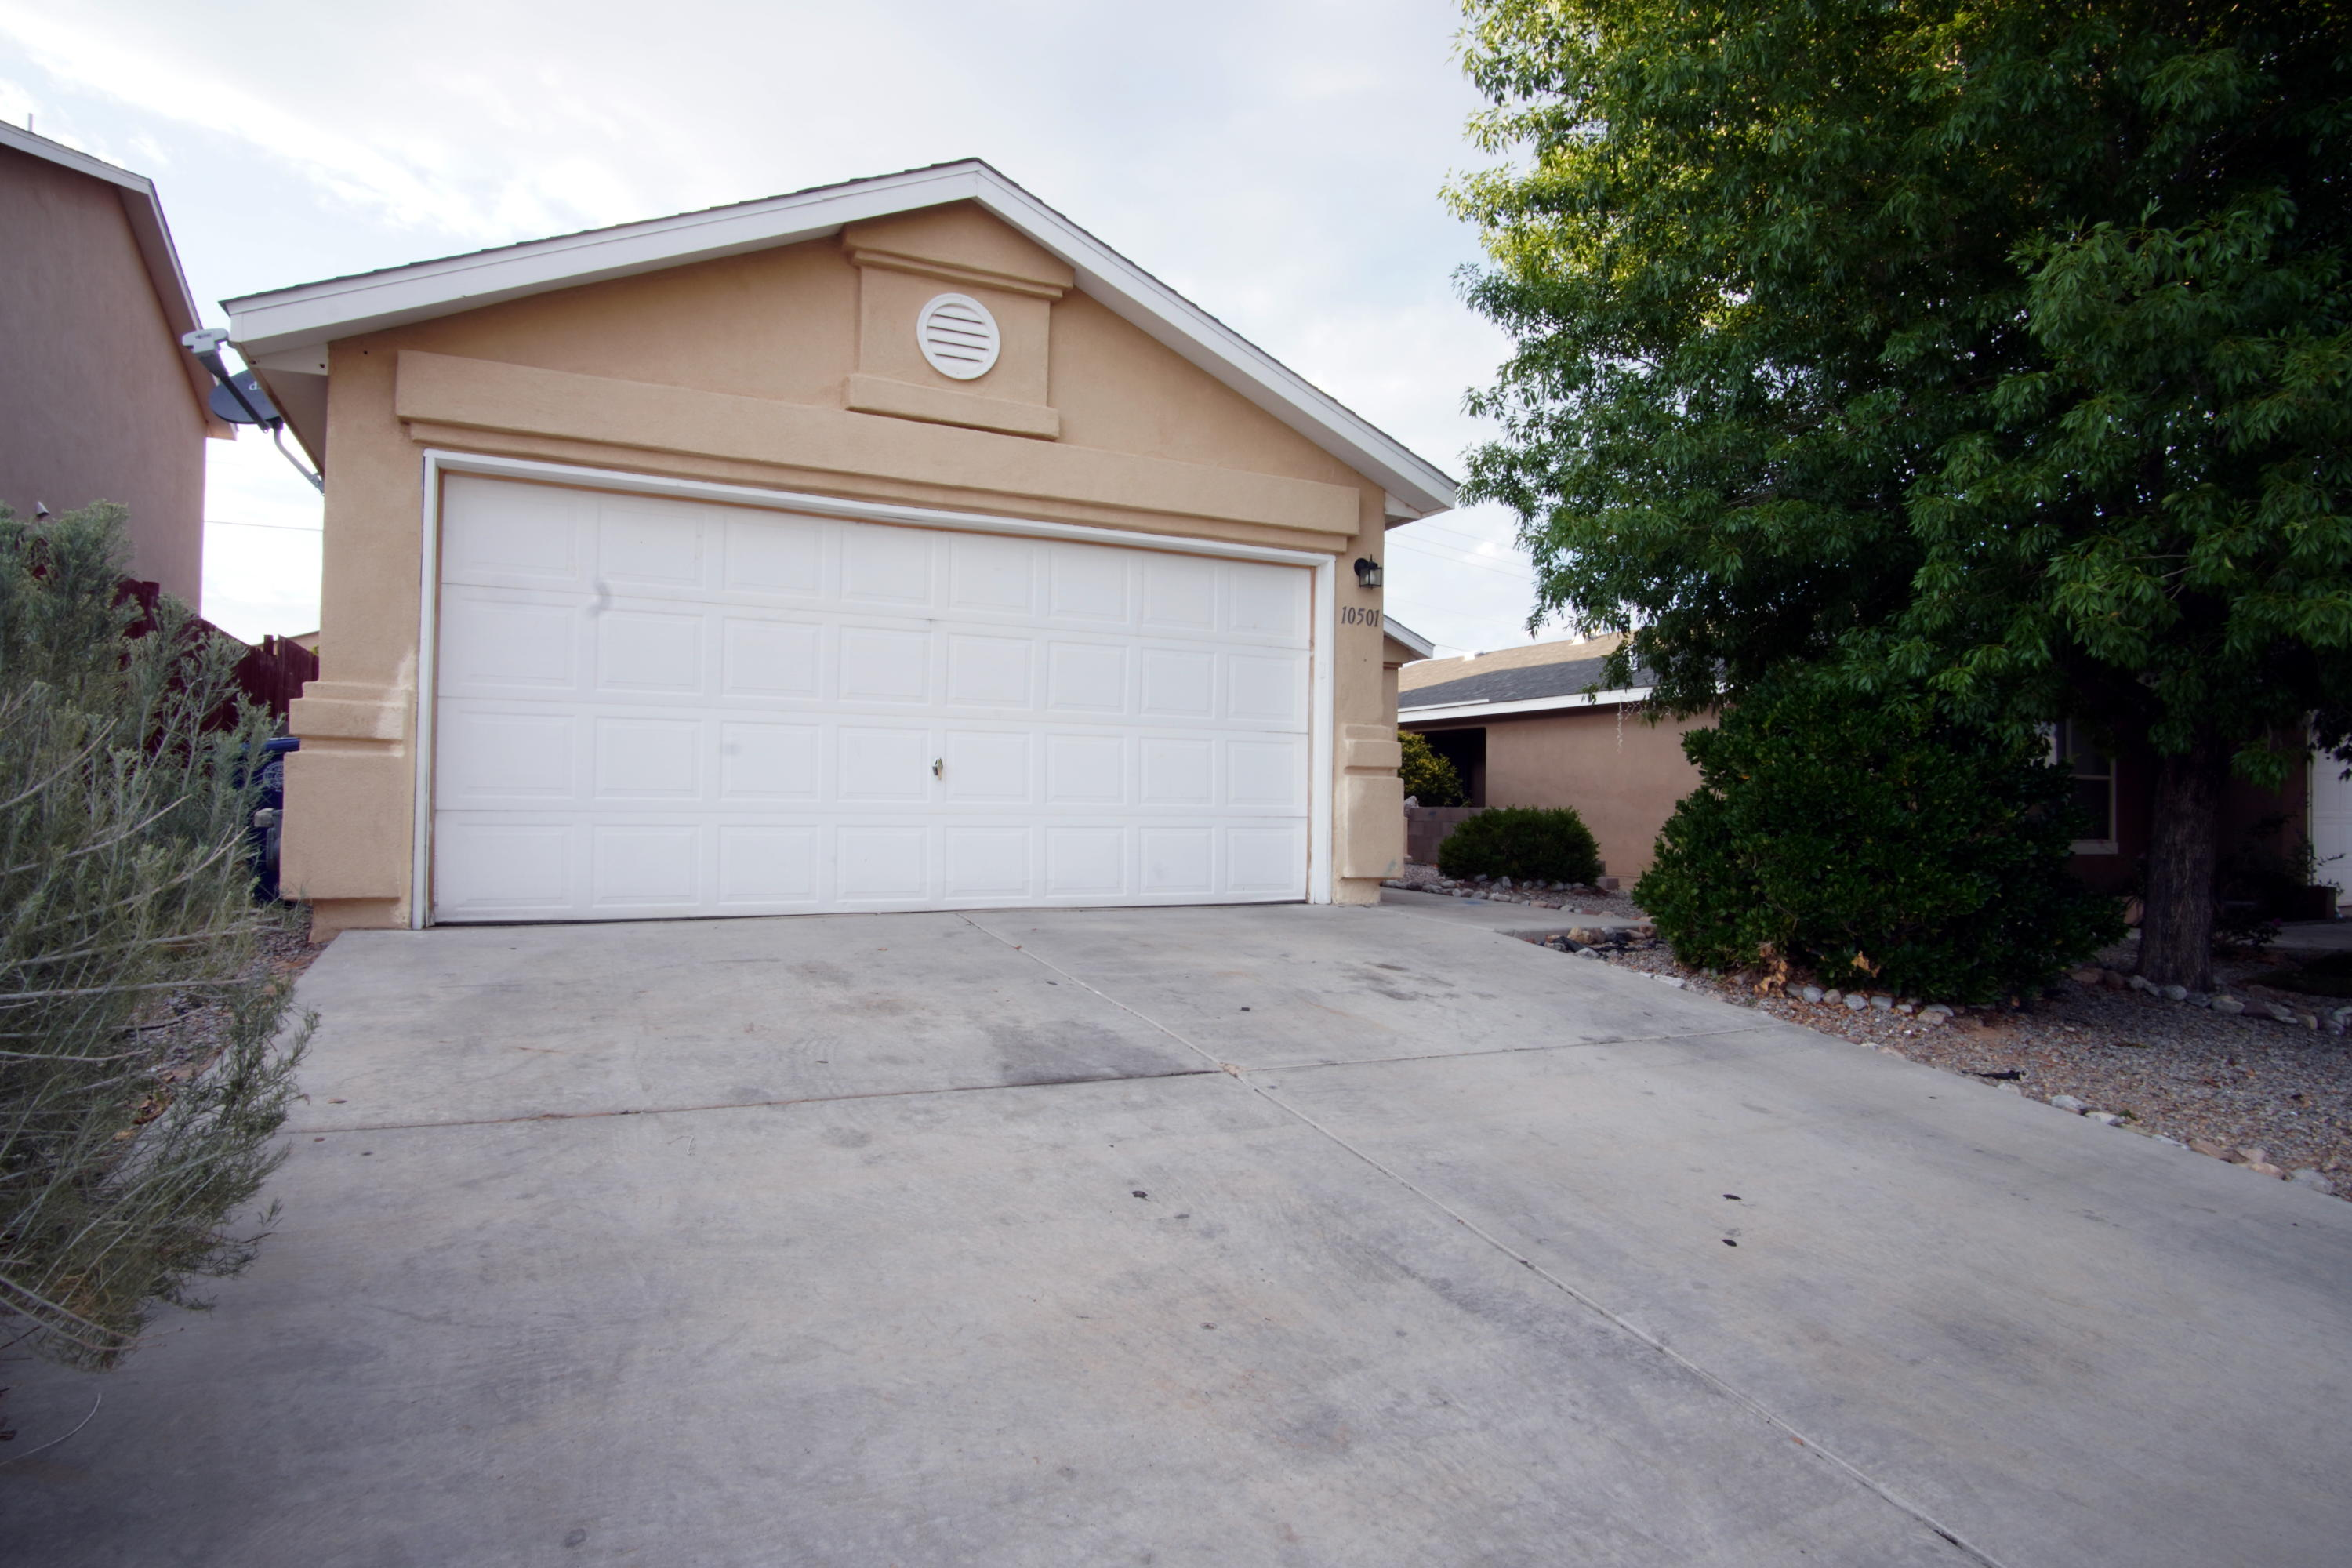 Great Artistic home close to parks, shopping and community facilities. Refrigerated air, fully landscaped front yard, cinder block walls separate neighboring properties and backyard has a concrete patio and plenty of room for your personal touch!